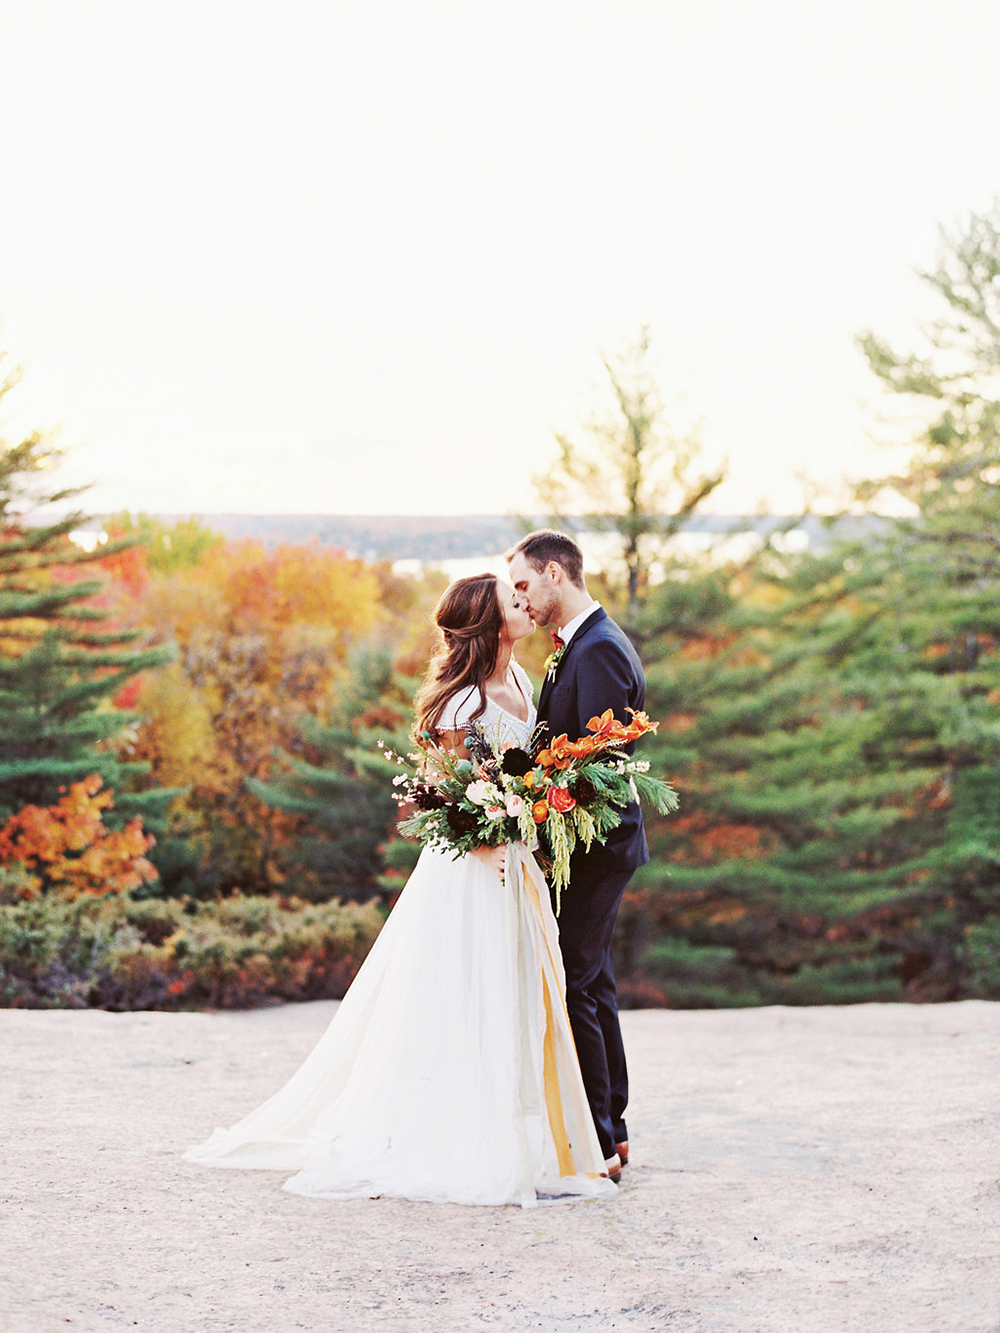 Romantic Elopement Inspiration with Rich Colors - photo by Evelyn Barkey Photography http://ruffledblog.com/romantic-elopement-inspiration-with-rich-colors